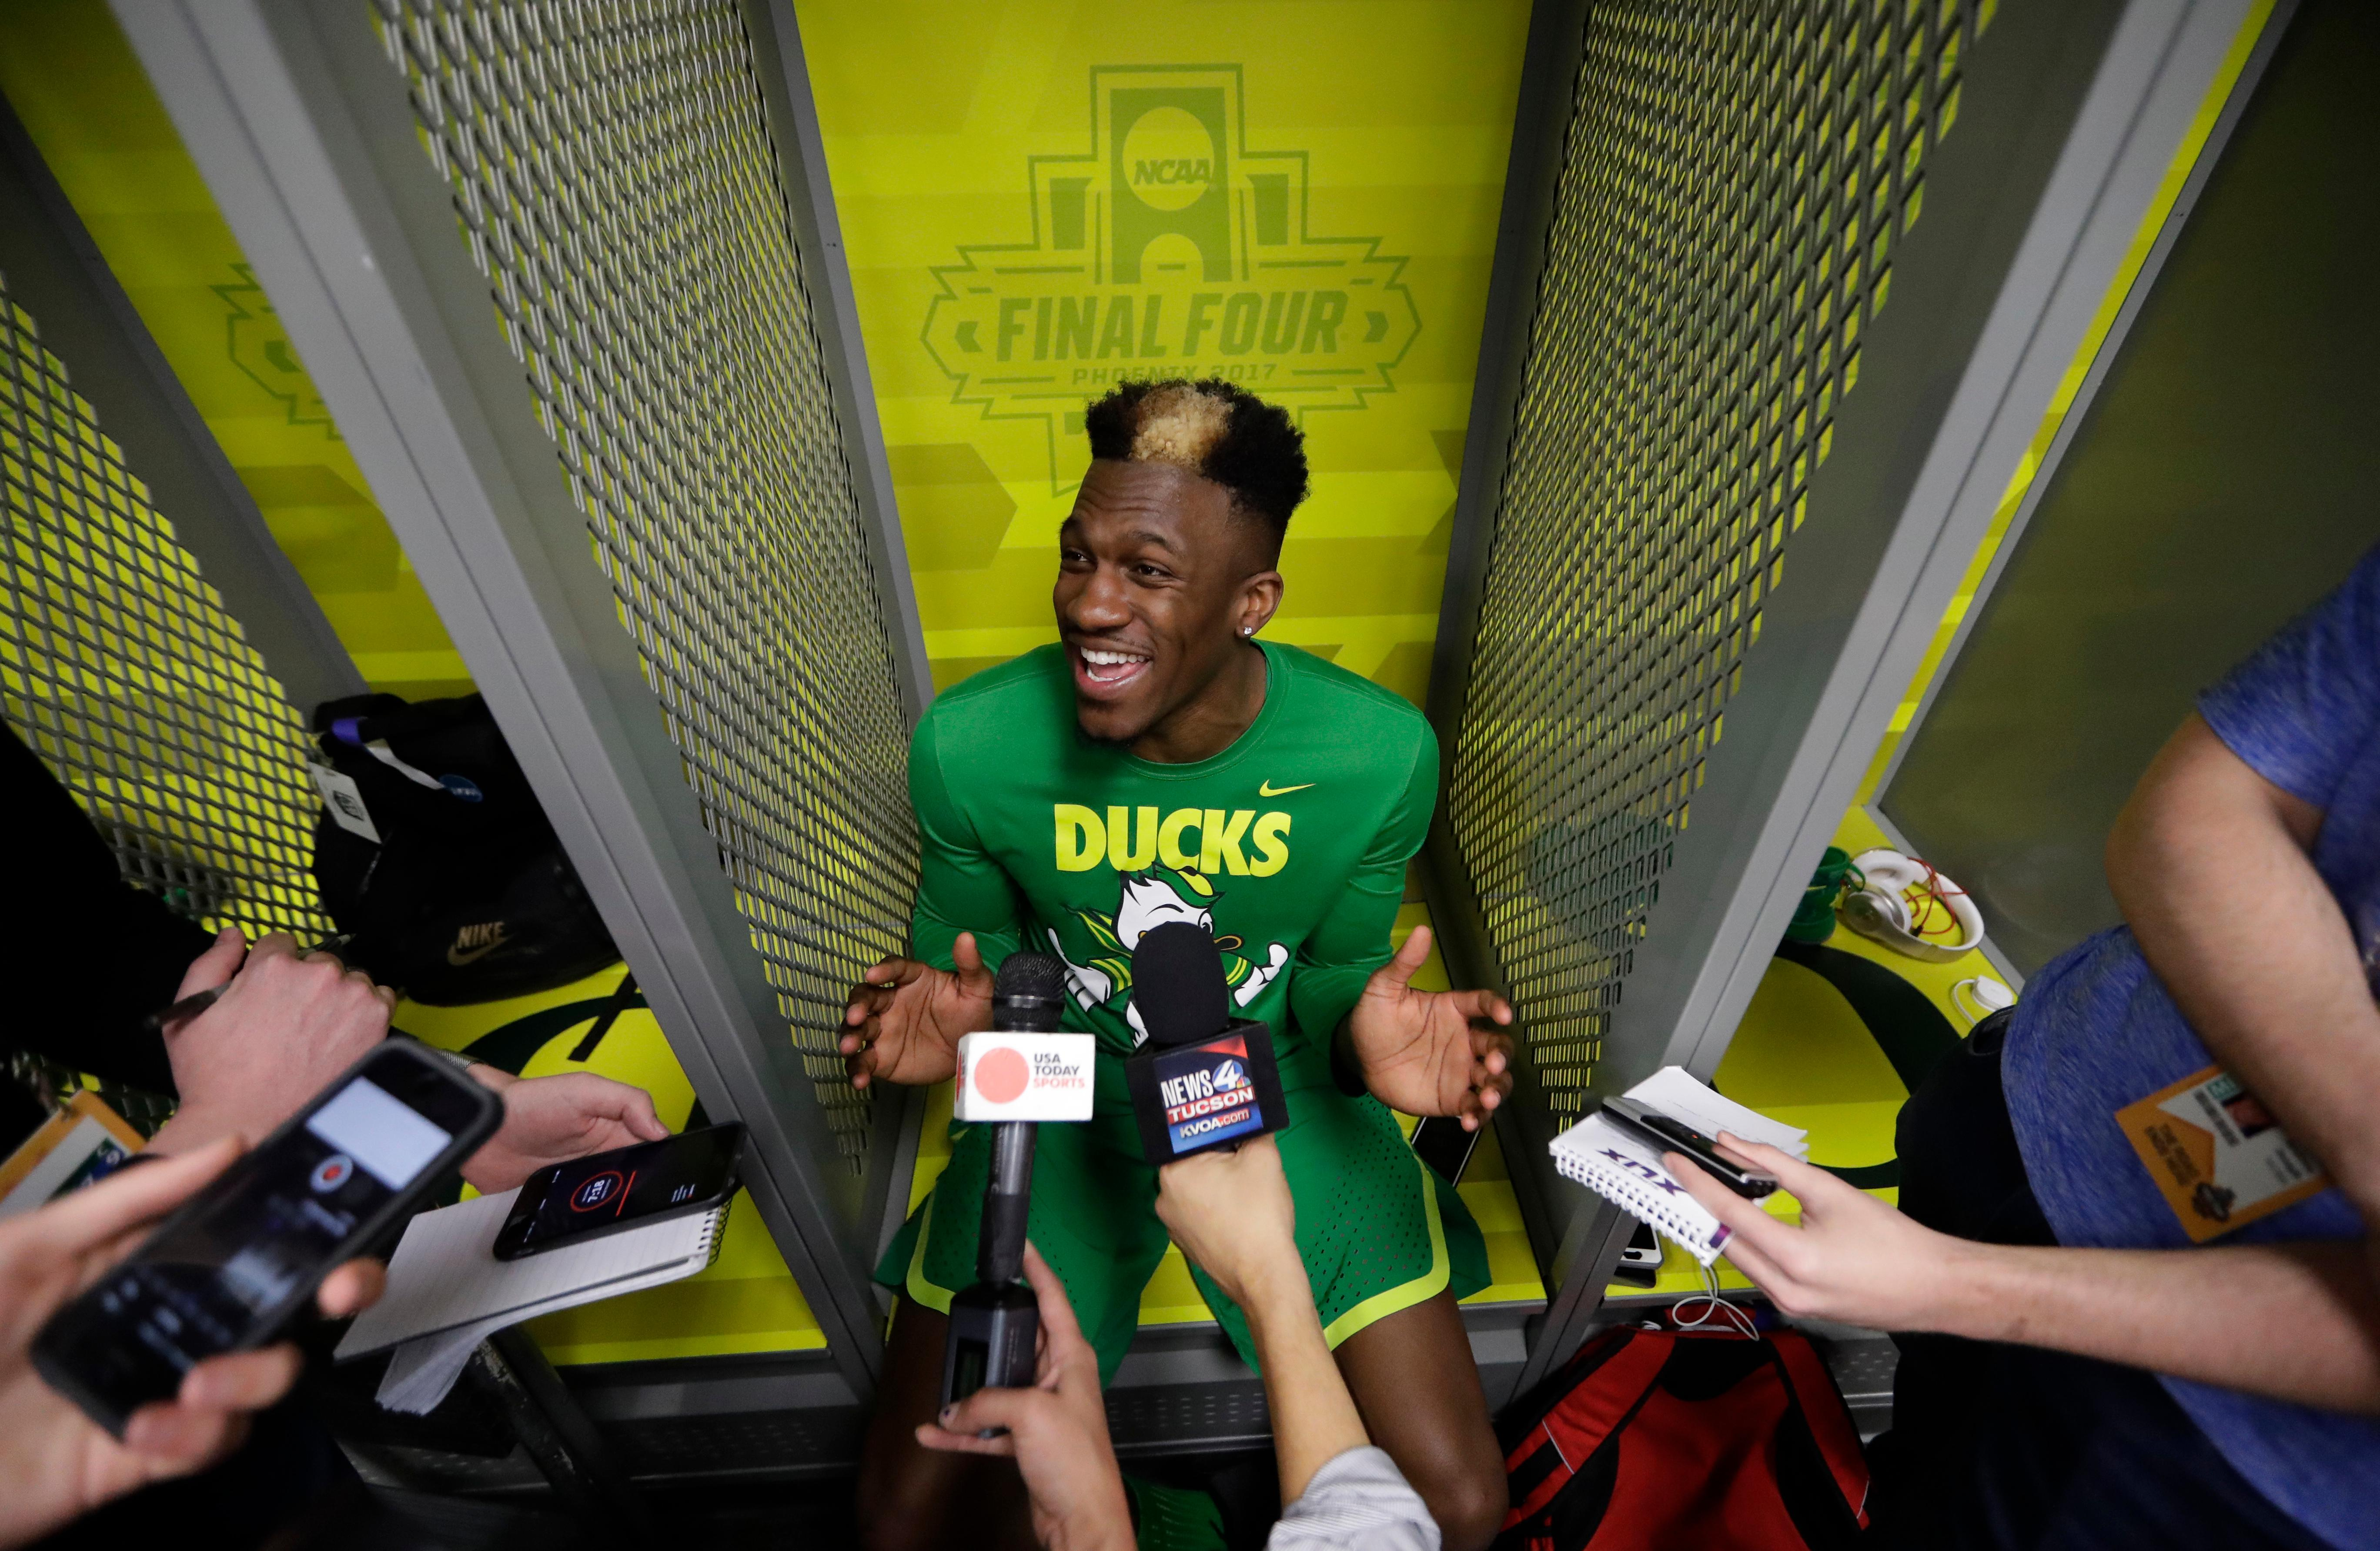 Oregon's Dylan Ennis answers questions after a practice session for their NCAA Final Four tournament college basketball semifinal game Thursday, March 30, 2017, in Glendale, Ariz. (AP Photo/David J. Phillip)